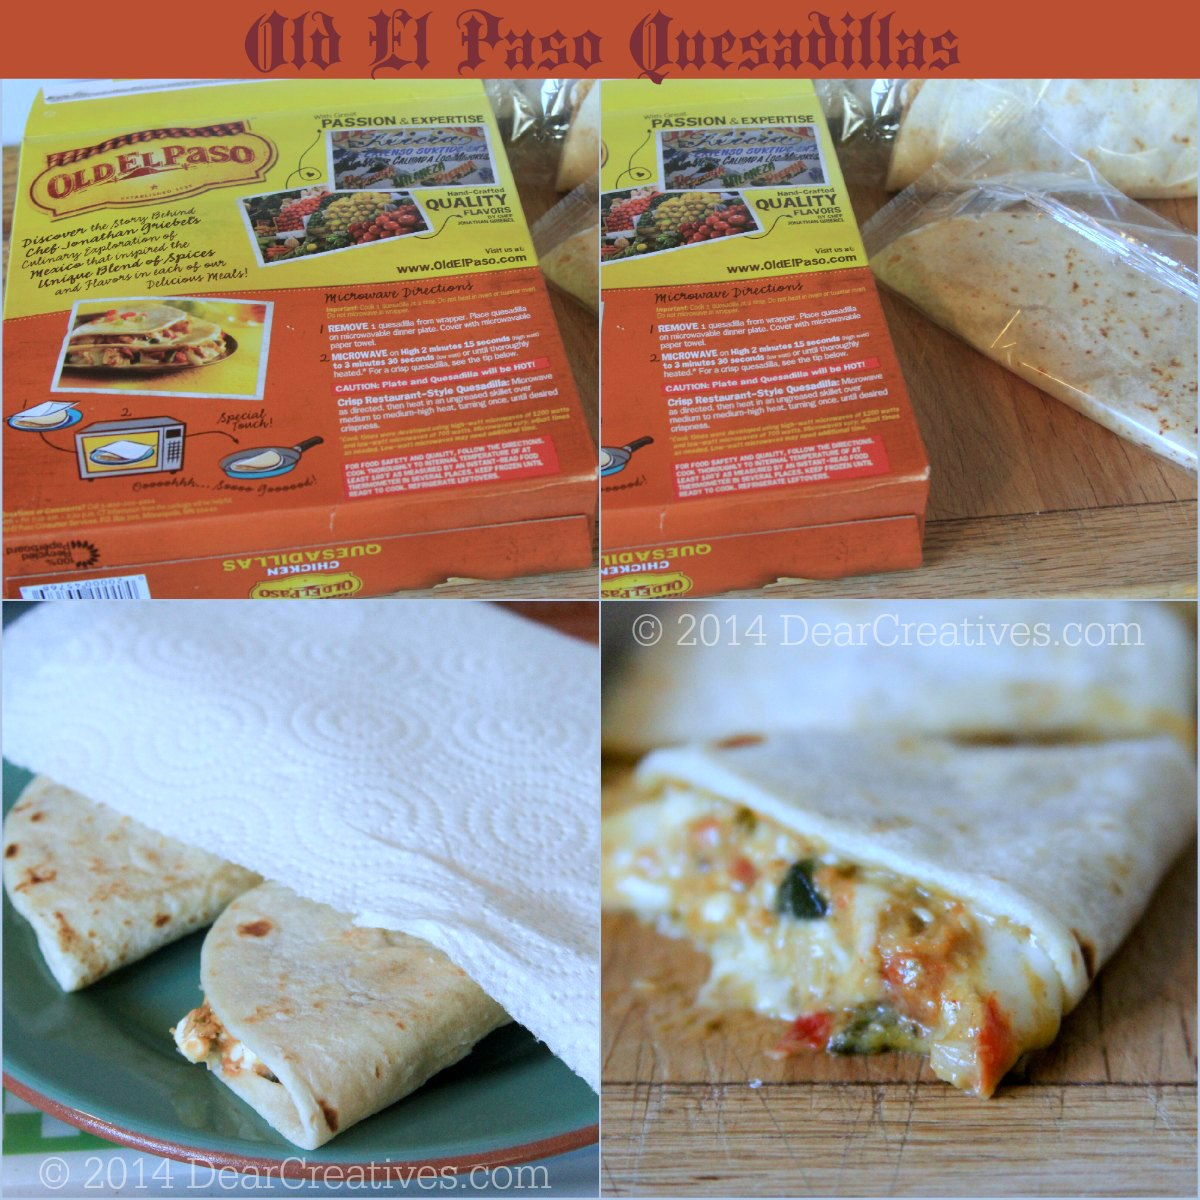 Old El Paso Quesadillas _Step by Step_